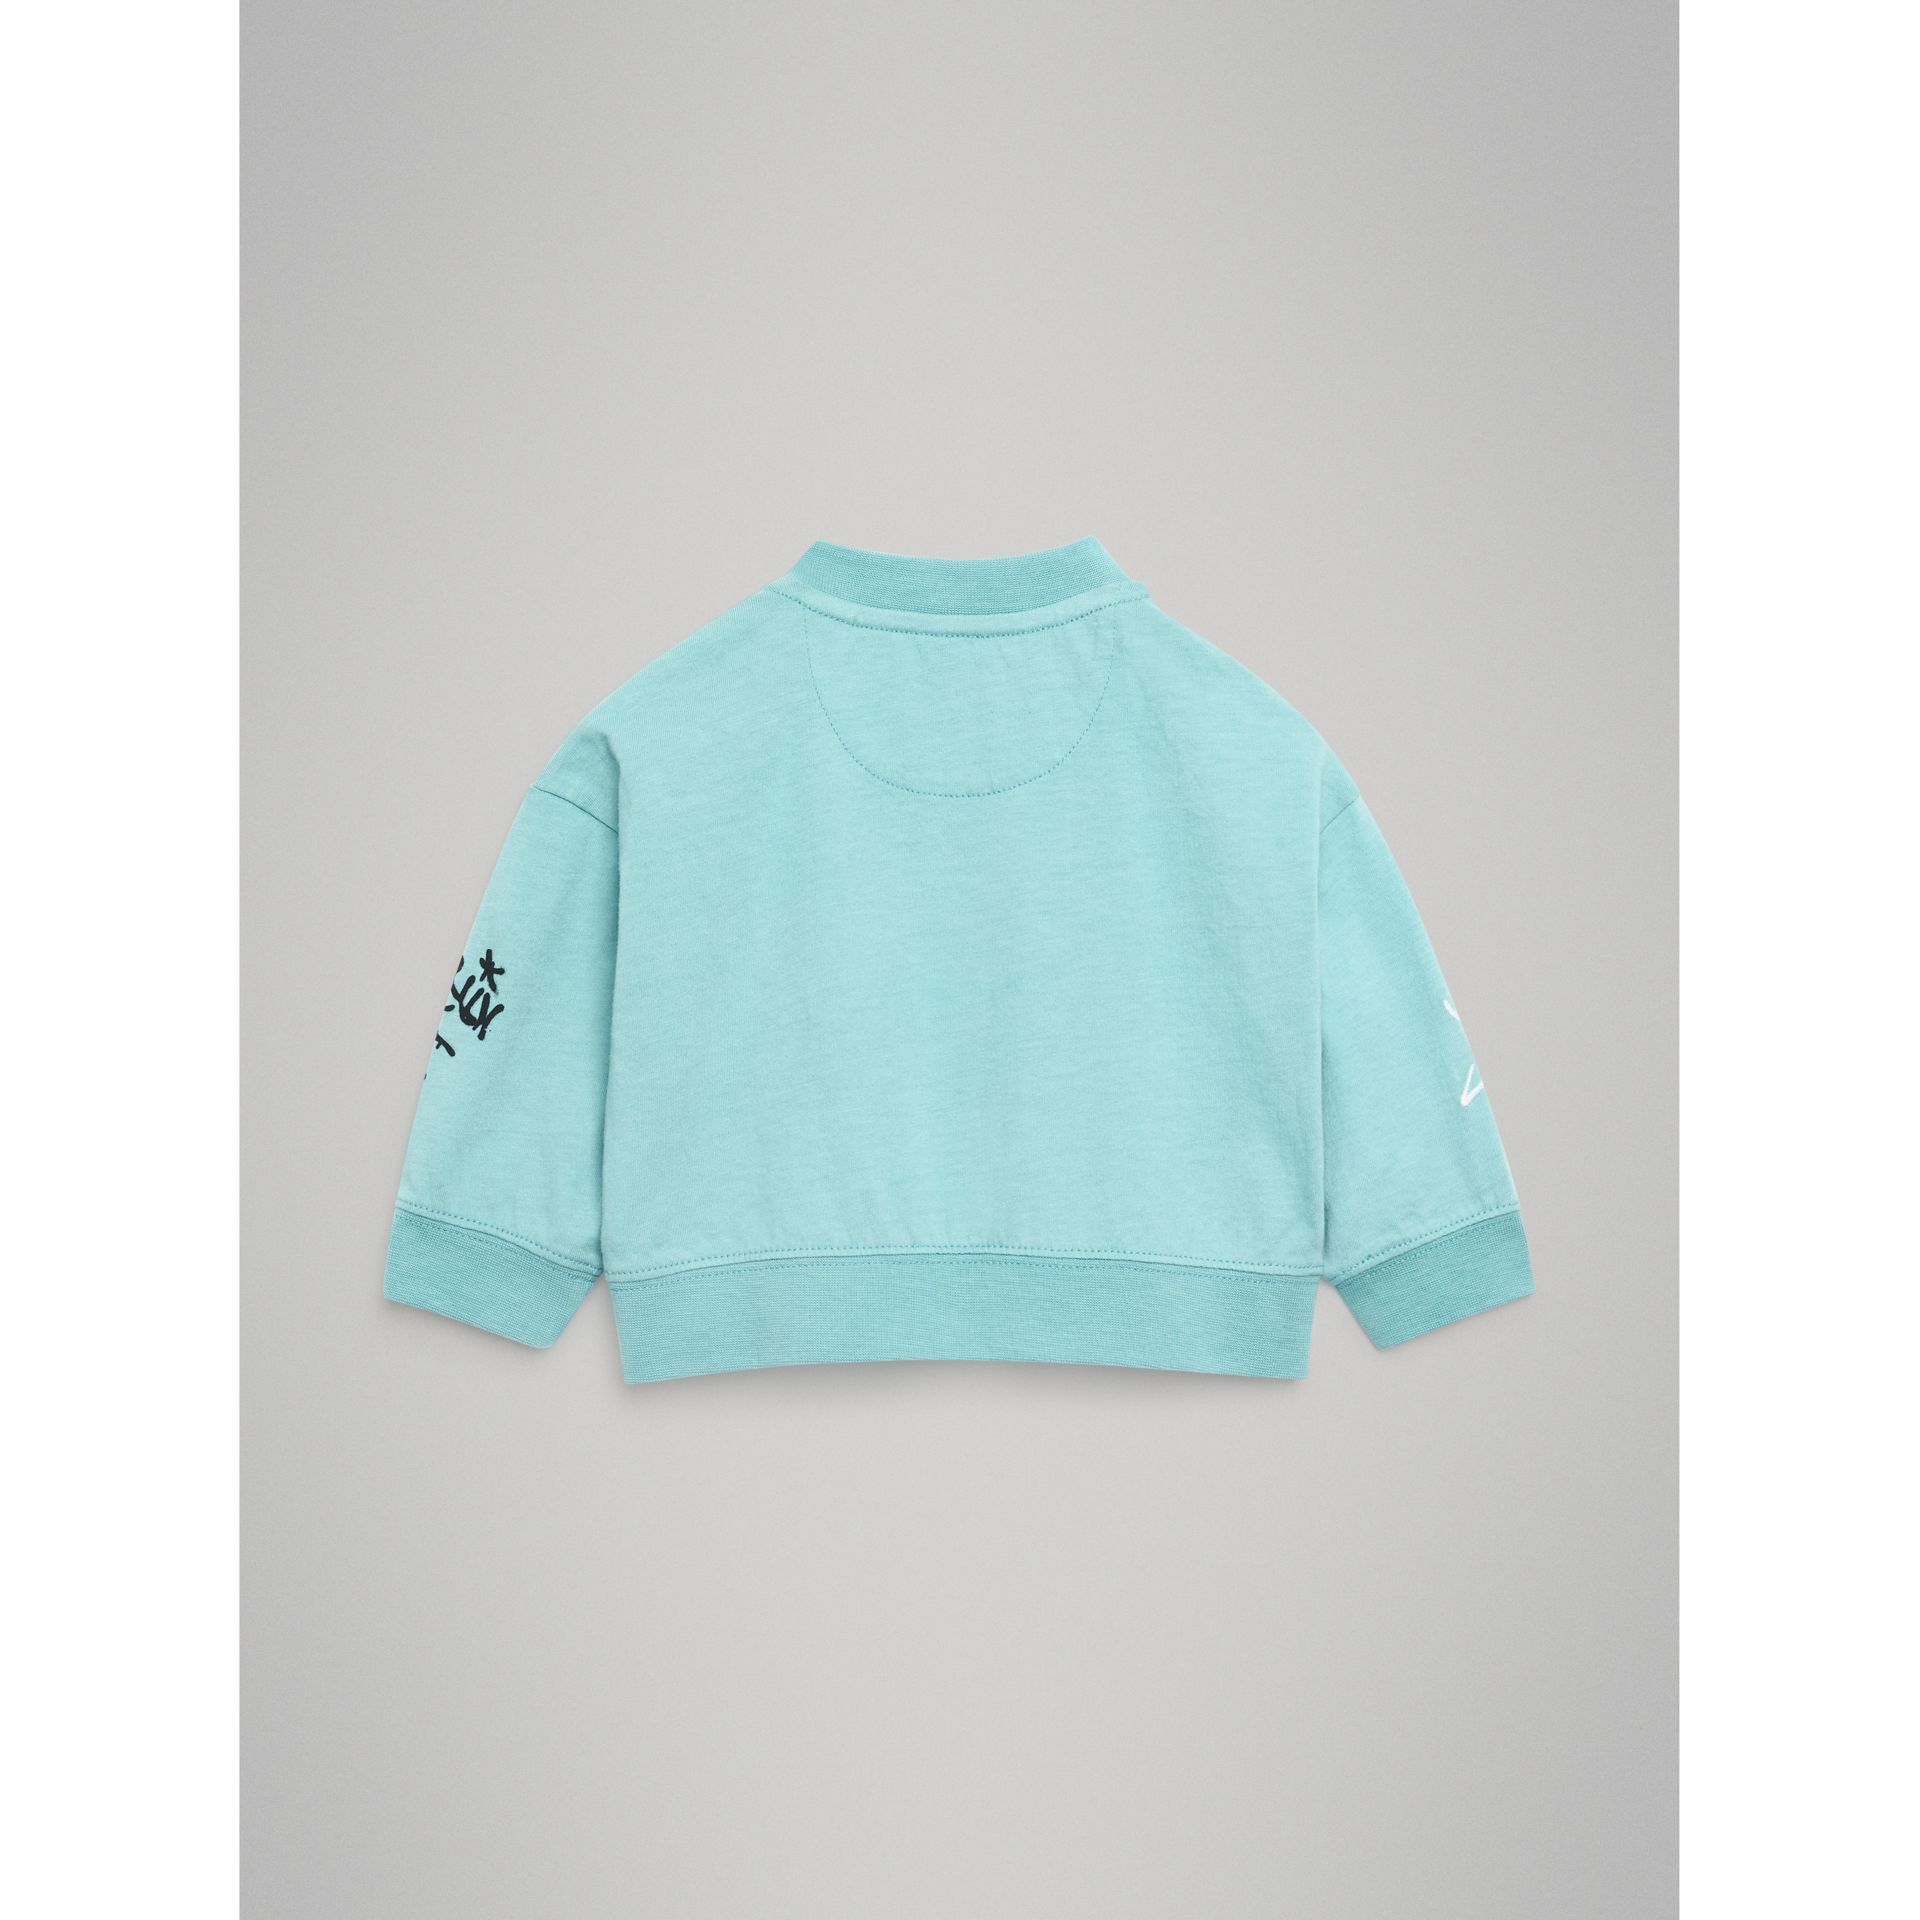 Forever is Now Print Cotton Sweatshirt in Turquoise | Burberry - gallery image 3